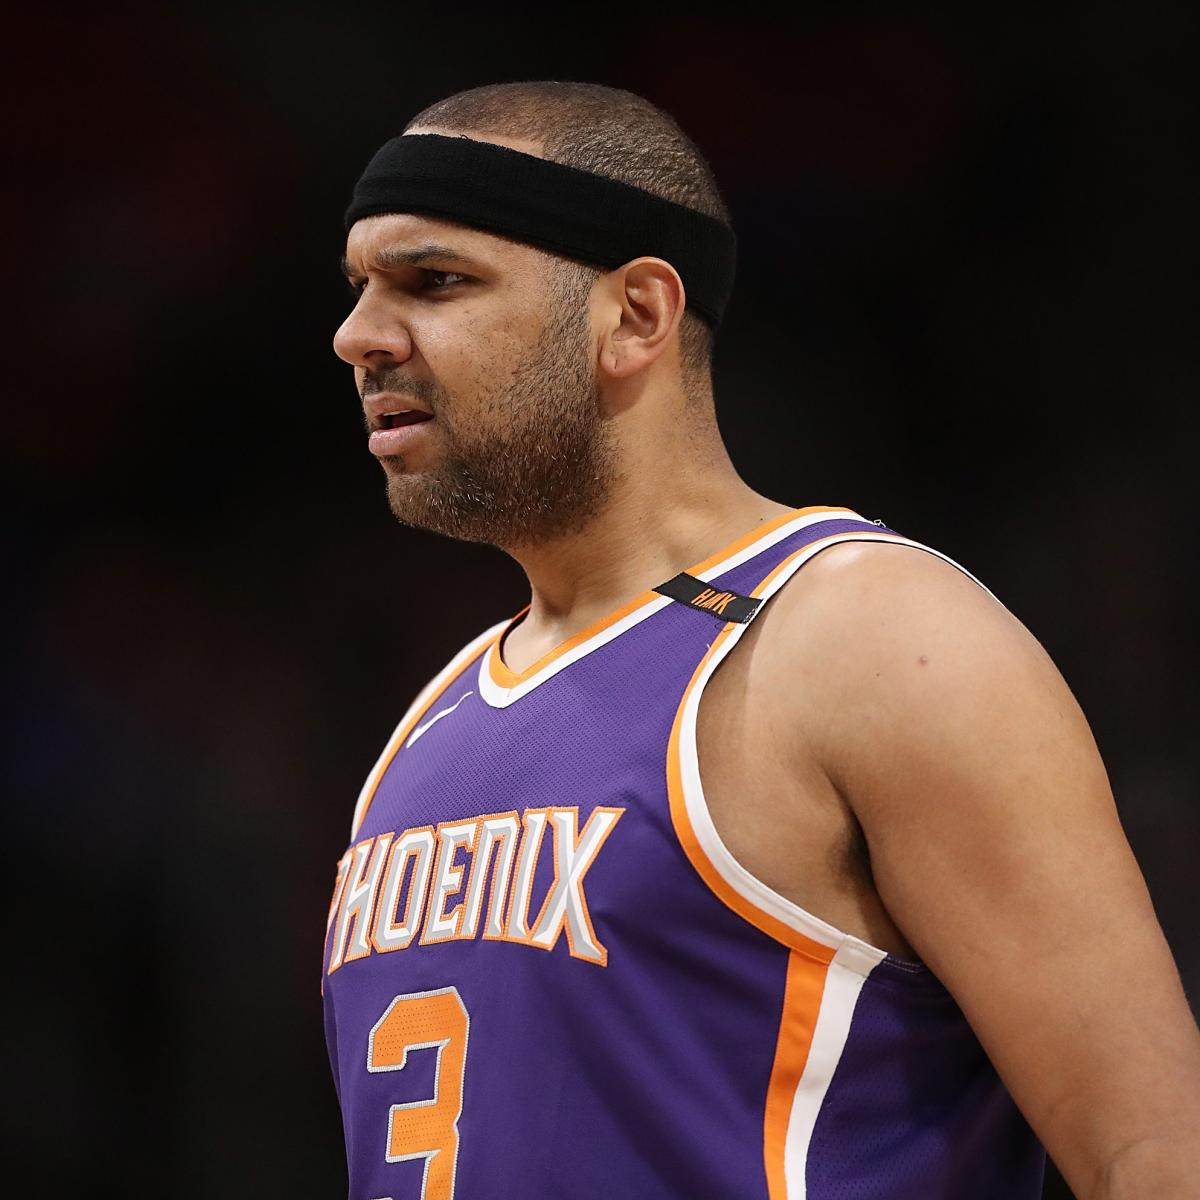 Jared Dudley